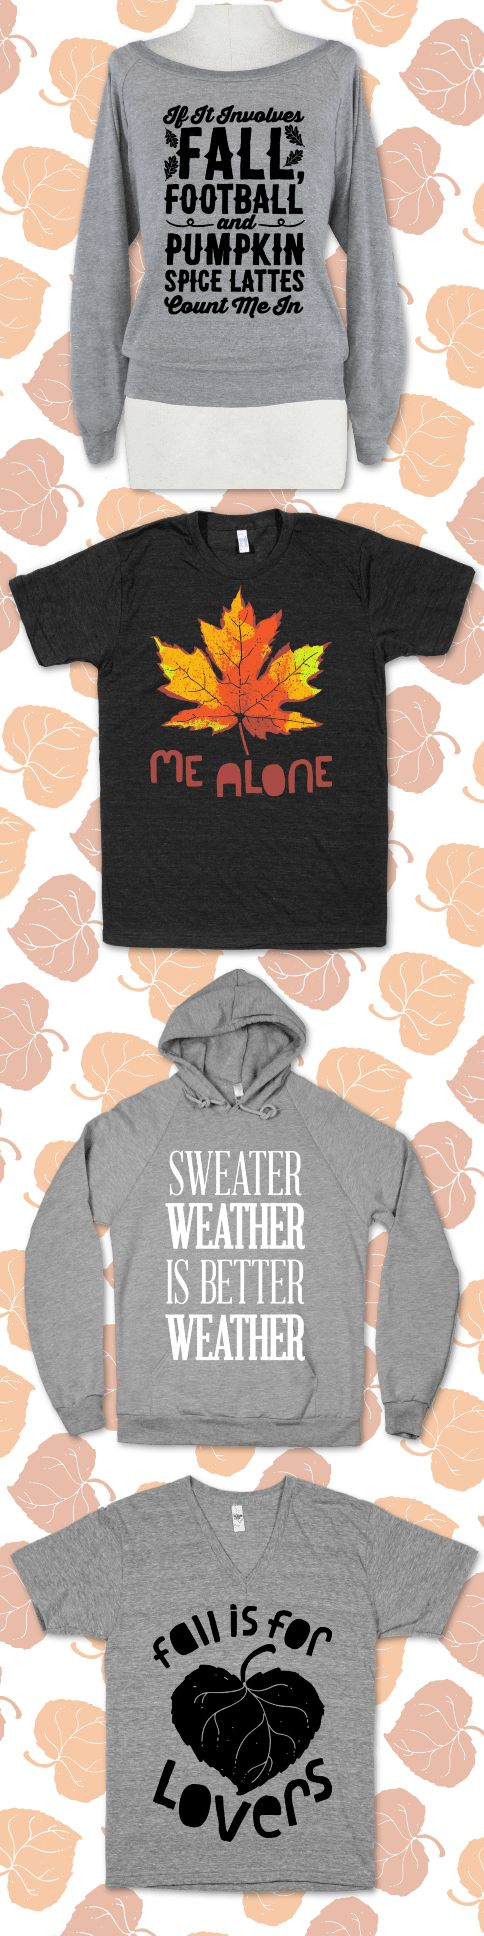 Celebrate fall with some cute fall, pumpkin spiced, football designed shirts. Who doesn't love fall?